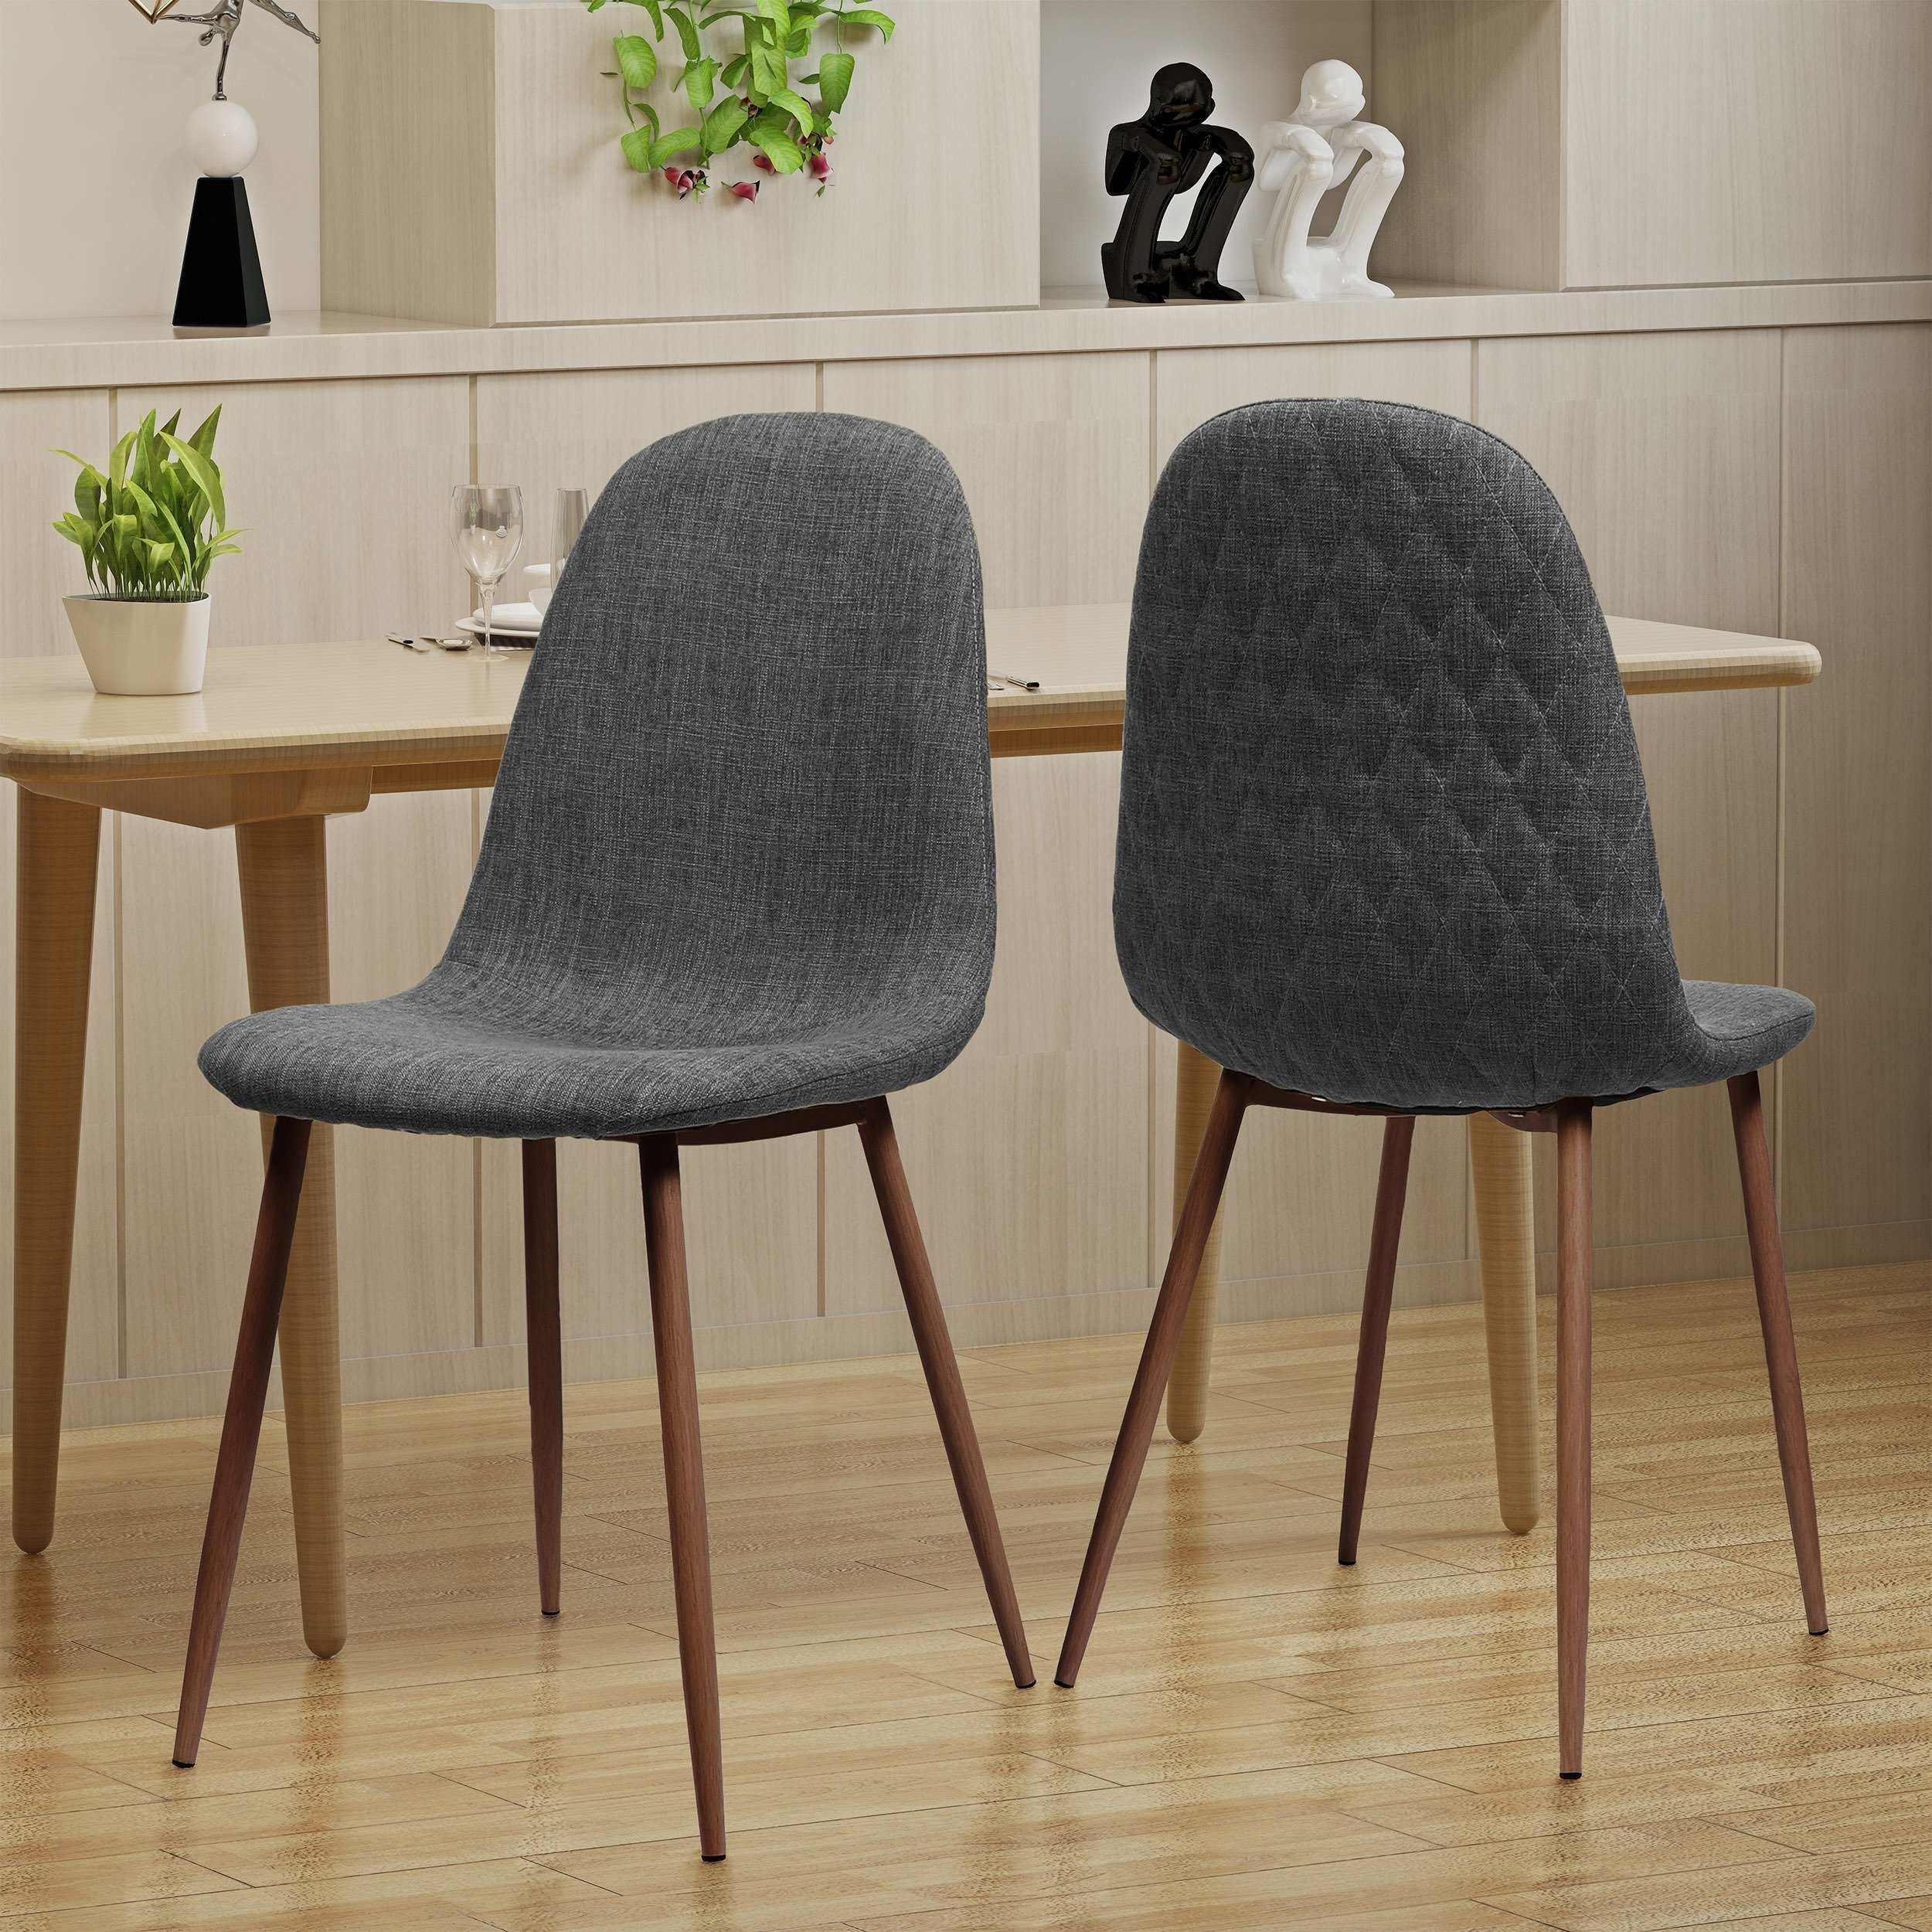 Fashionable Shop Caden Mid Century Fabric Dining Chair (Set Of 2)Christopher Pertaining To Caden Side Chairs (#10 of 20)